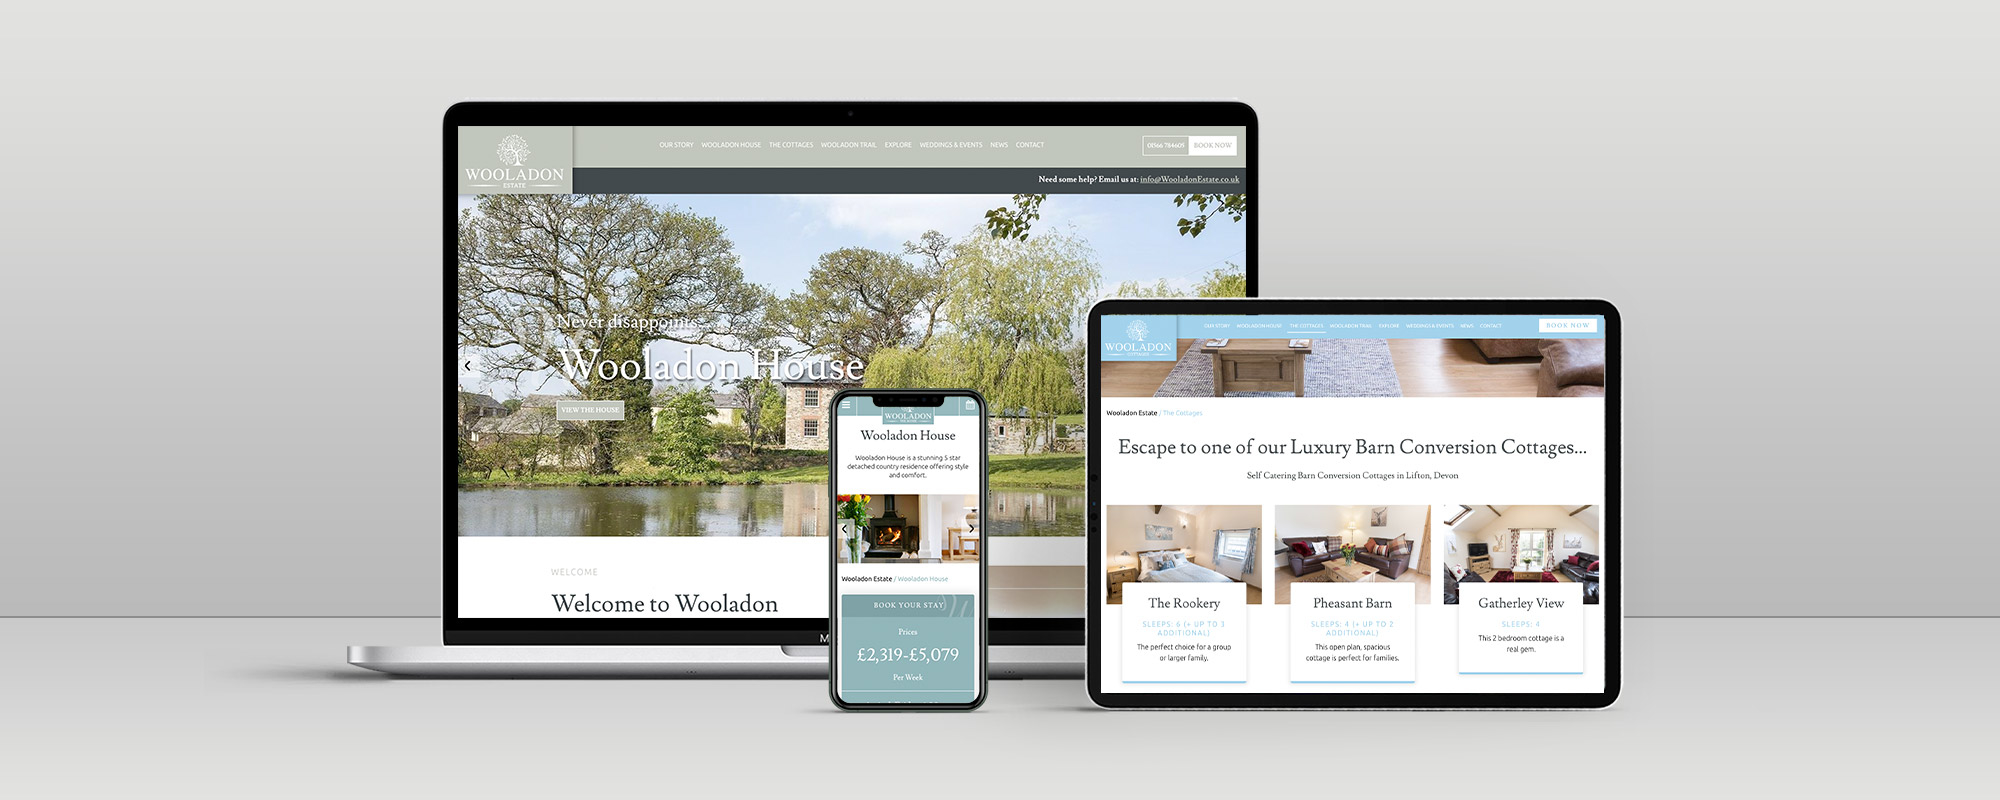 Wooladon Estate Wordpress Website Design on 3 Devices